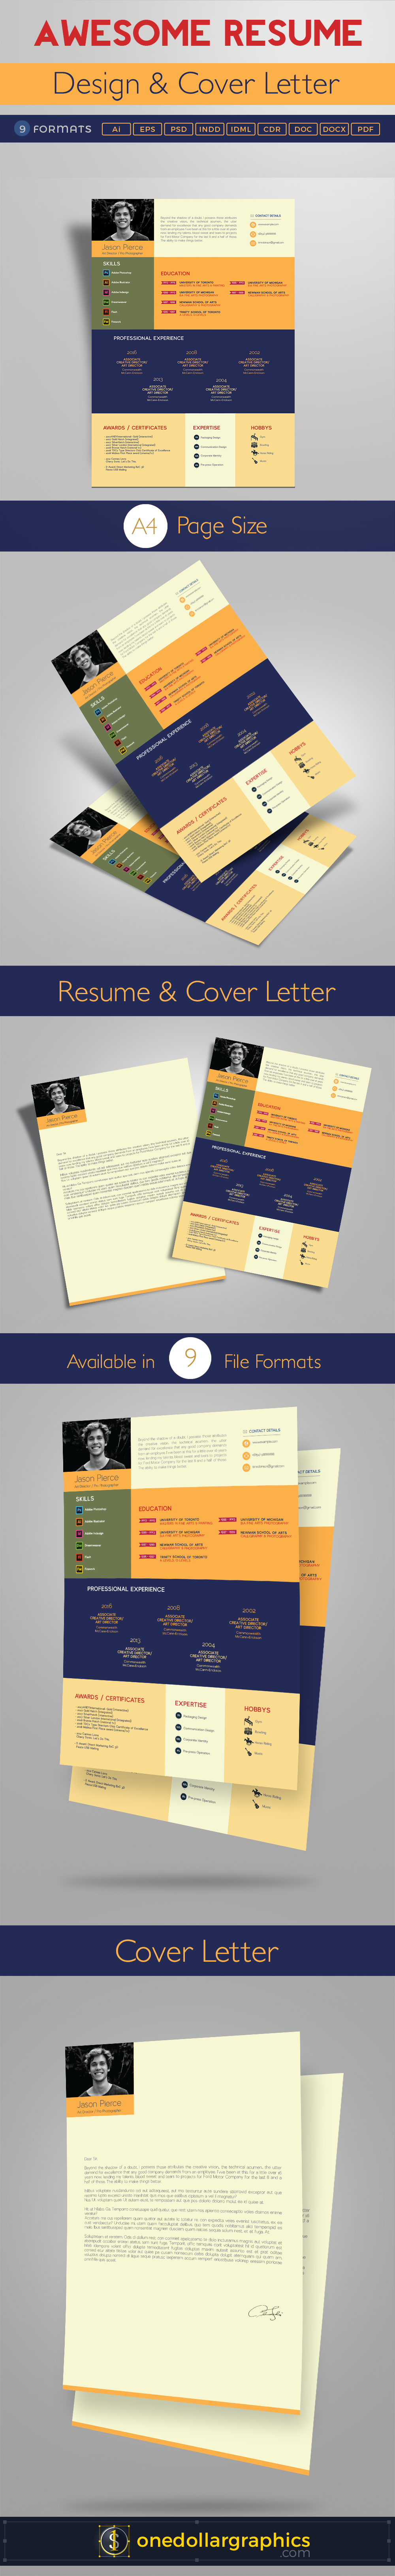 awesome resume  cv  design  cover letter template  4 psd